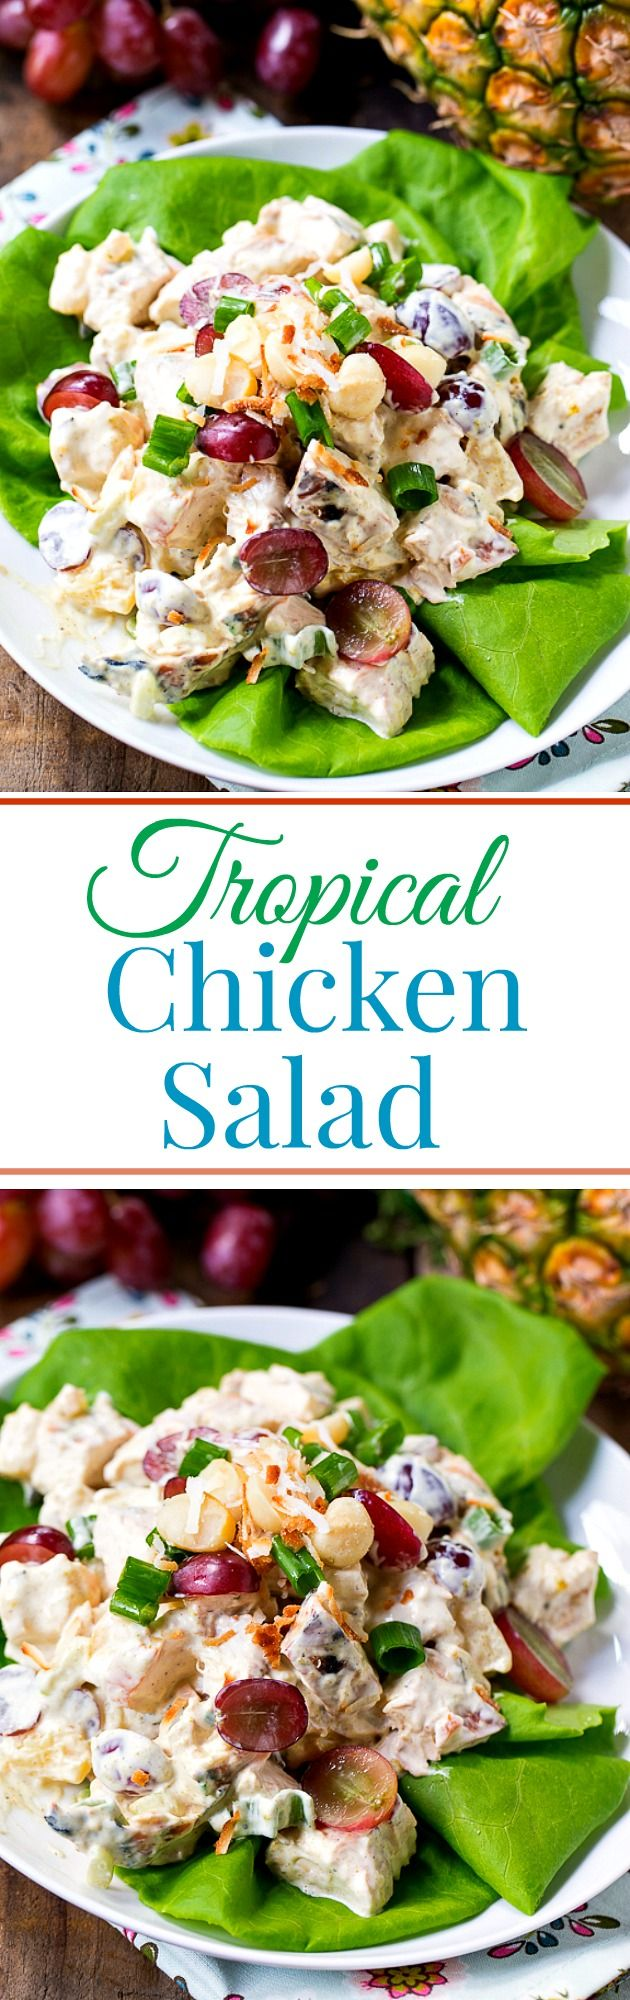 Tropical Chicken Salad is full of red grapes, pineapple, macadamia nuts, and shredded coconut for a tropical twist on chicken salad. Packed full of sweet and savory flavors, this is anything but a bland chicken salad.